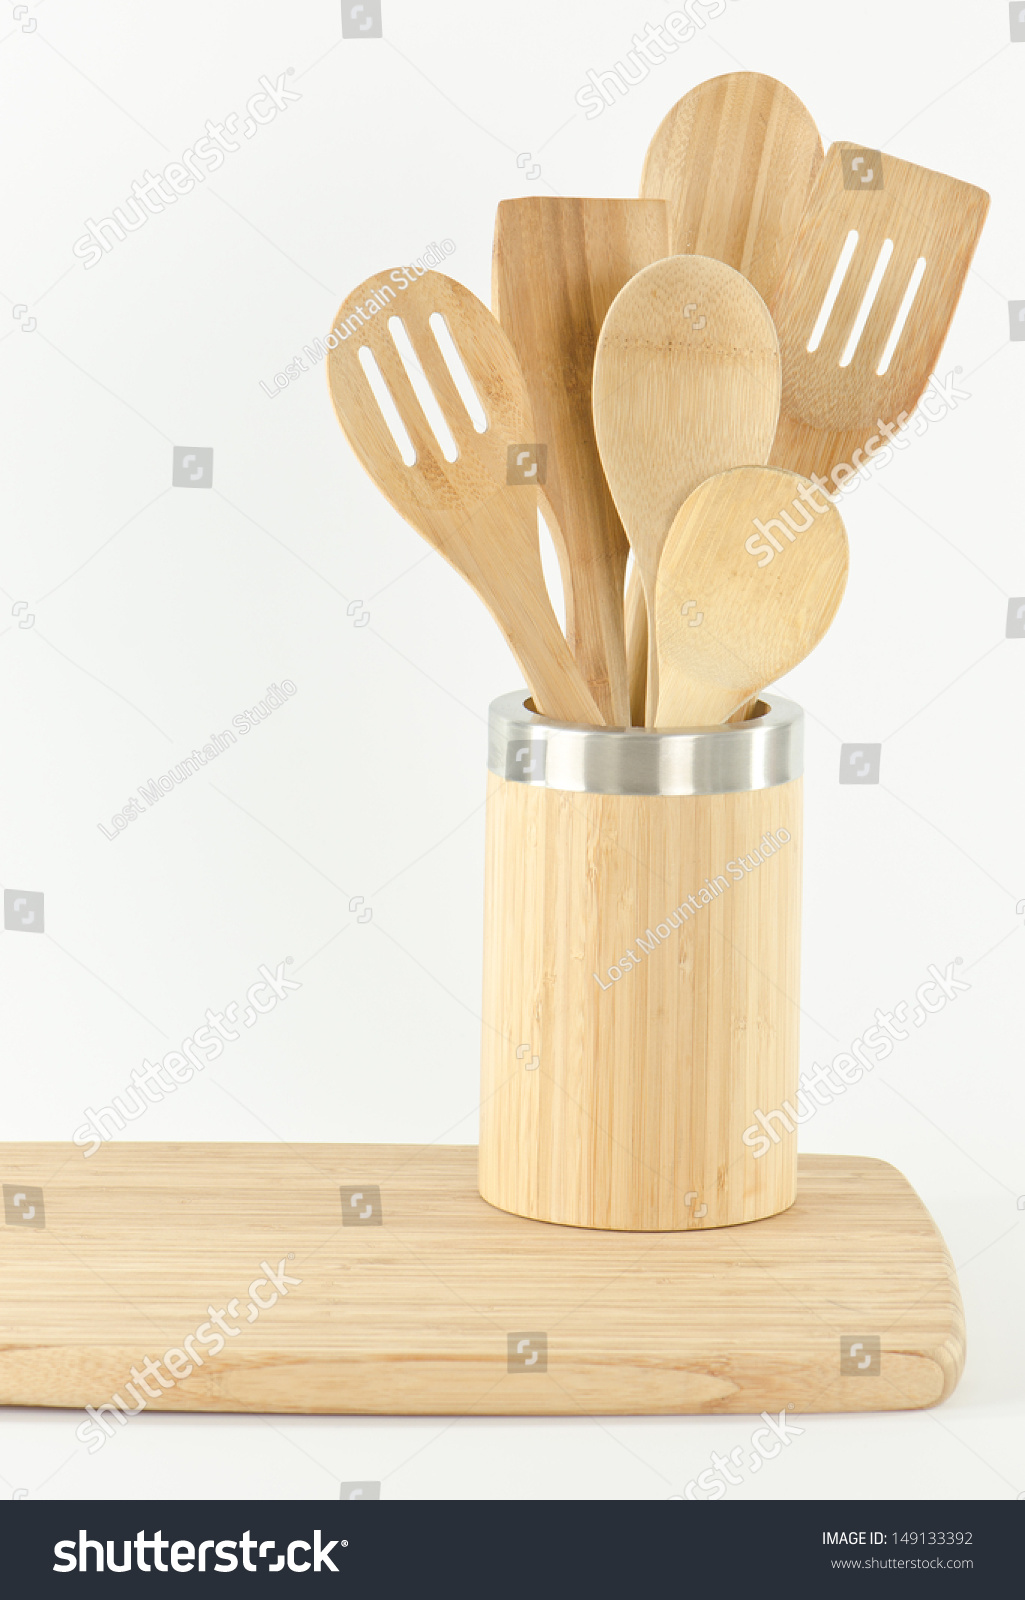 Bamboo Kitchen Utensils Container And Cutting Board Stock